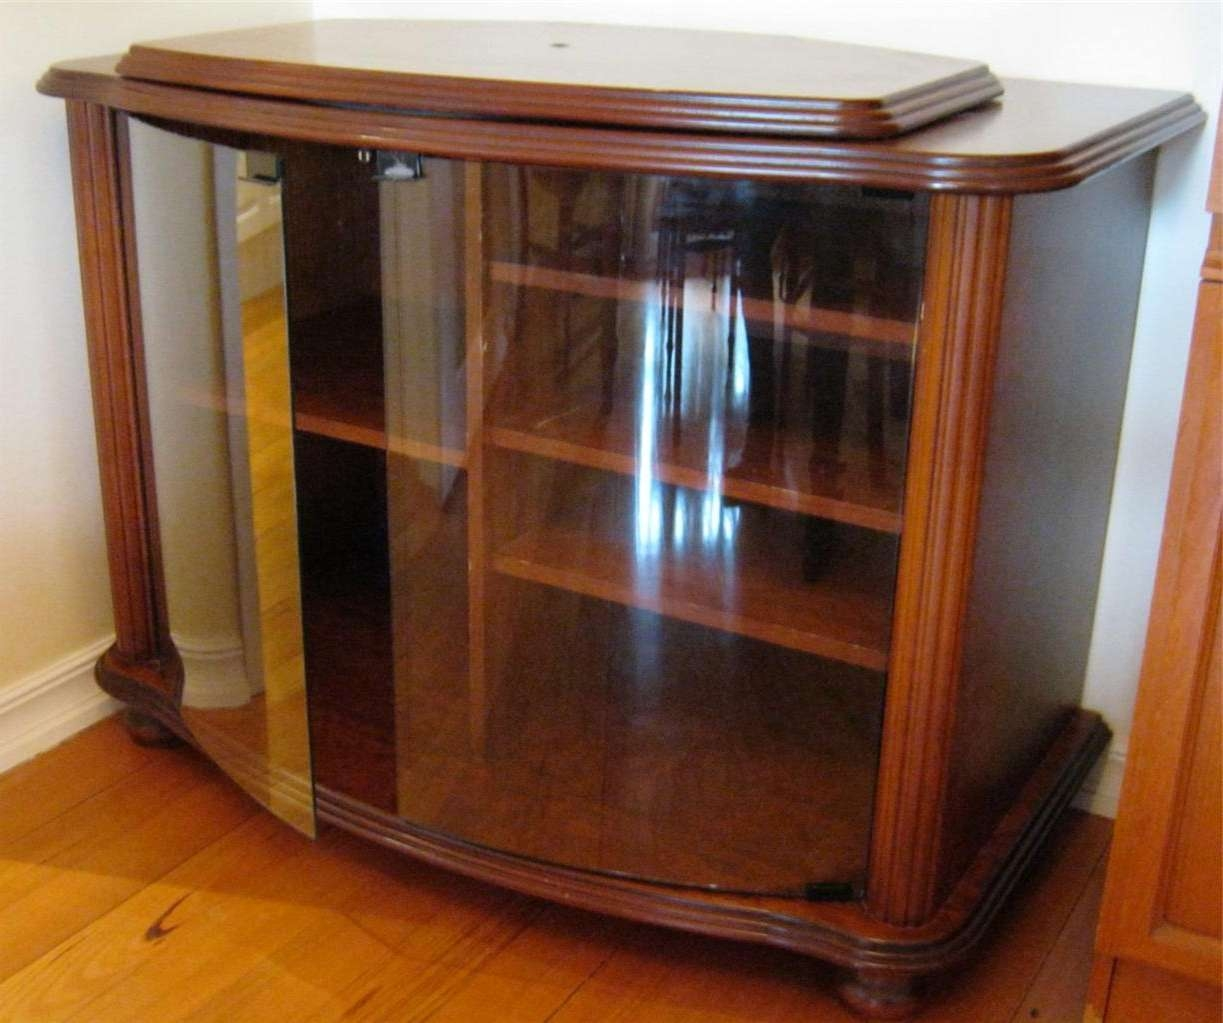 Corner Tv Stand Cabinet With Frameless Glass Doors – Decofurnish Regarding Tv Cabinets With Glass Doors (View 3 of 20)